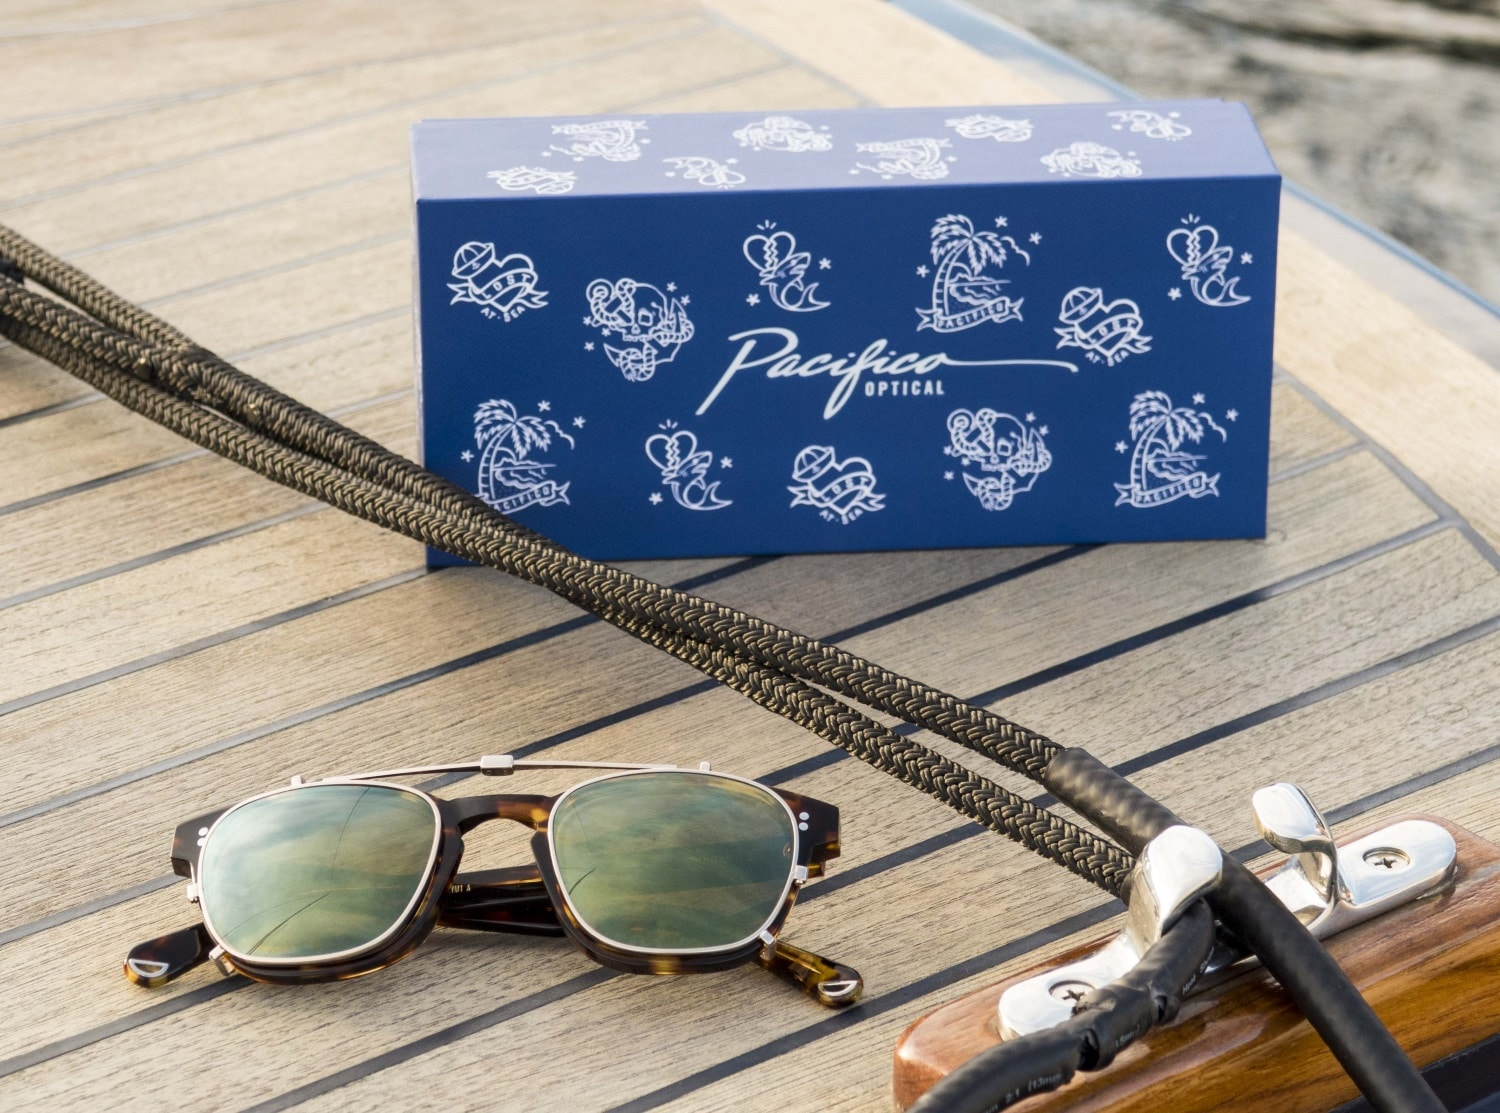 yacht master sunglasses on the wood